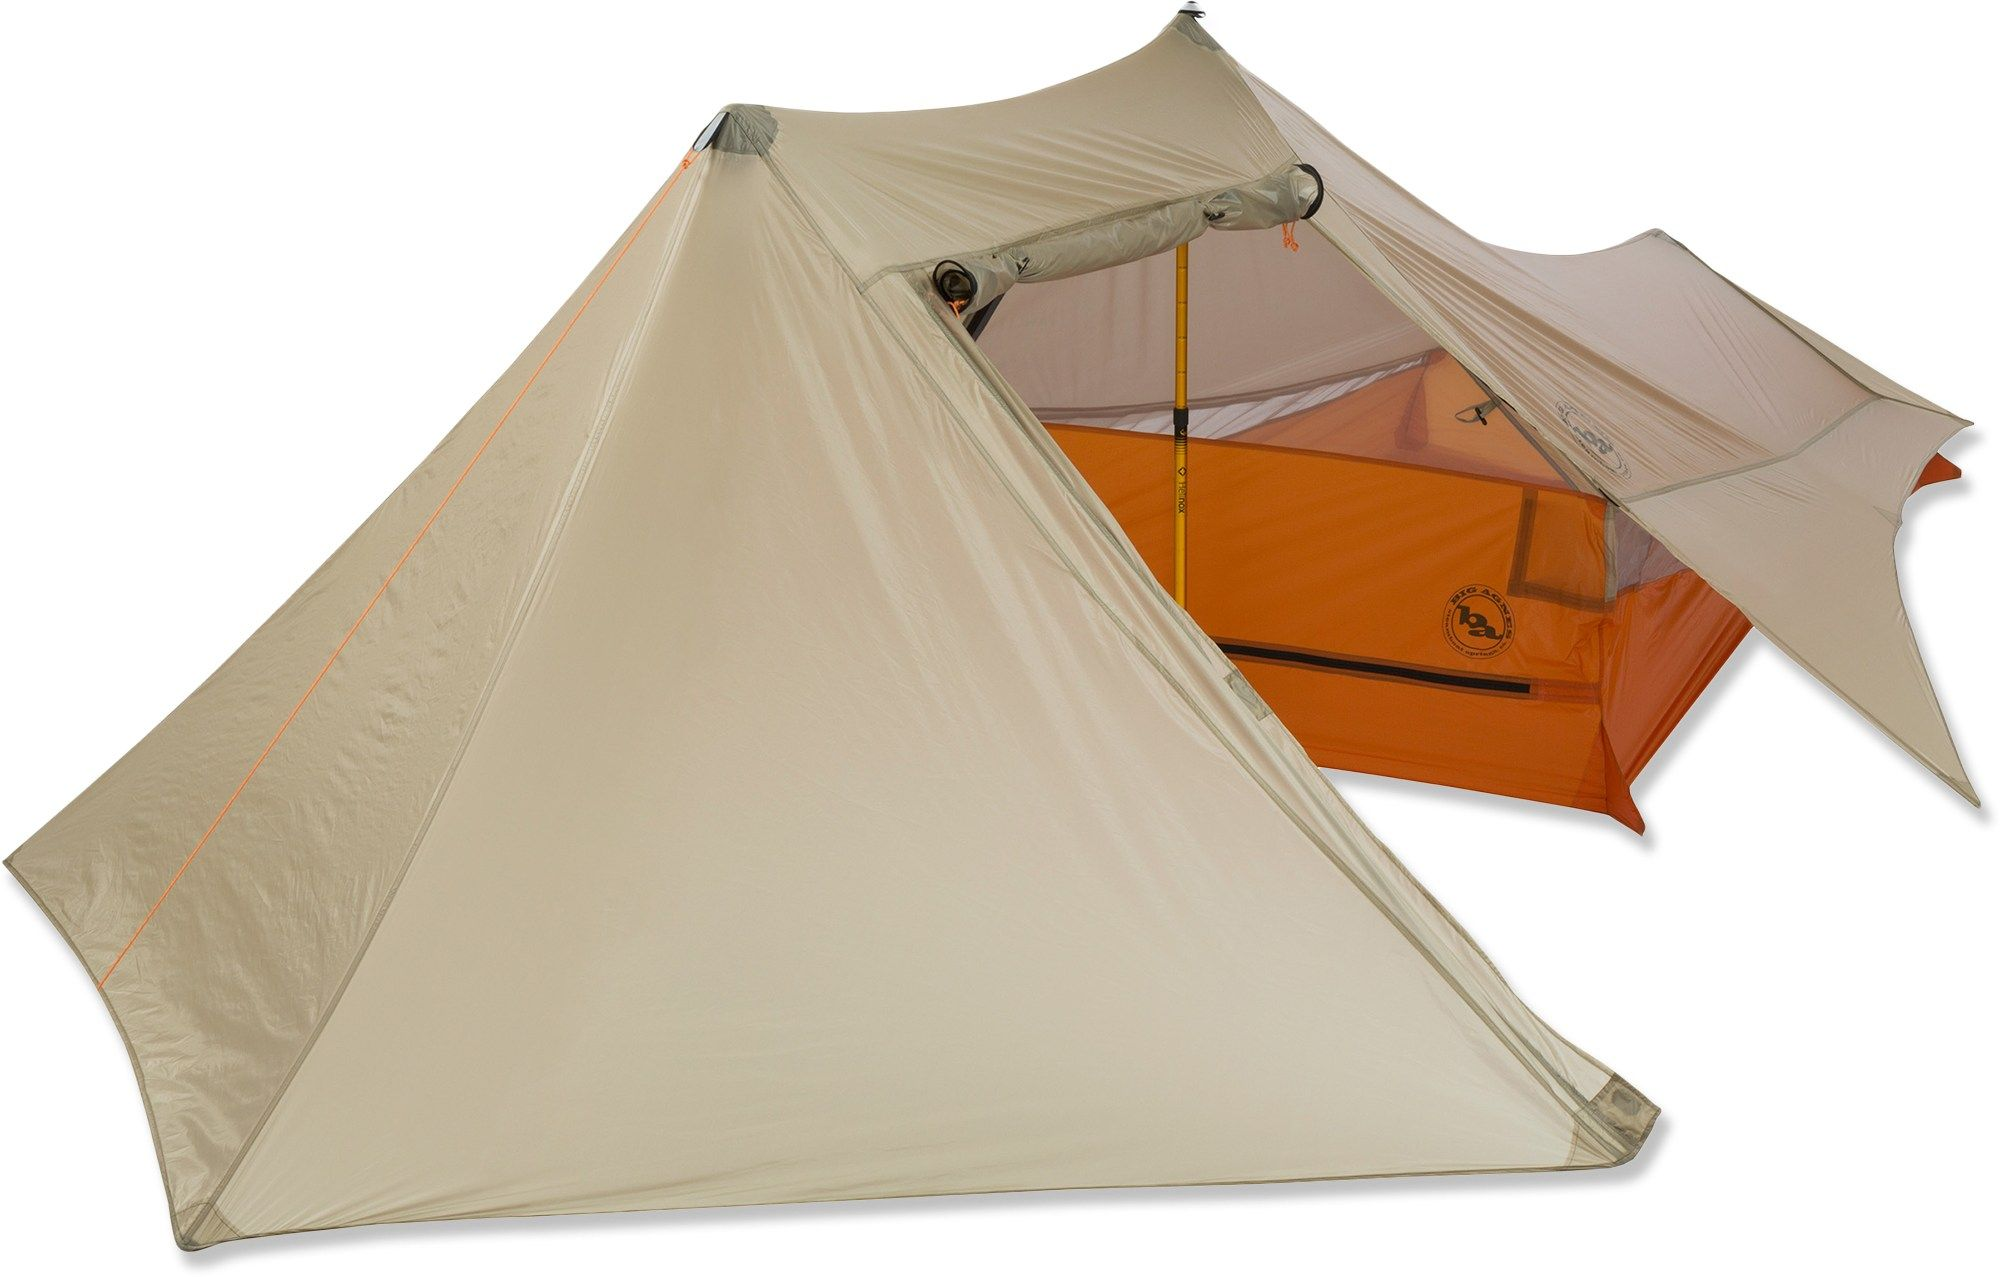 Big Agnes Super Scout UL2 Tent - Free Shipping at REI.com  sc 1 st  Pinterest & Big Agnes Super Scout UL2 Tent - Free Shipping at REI.com | BM ...